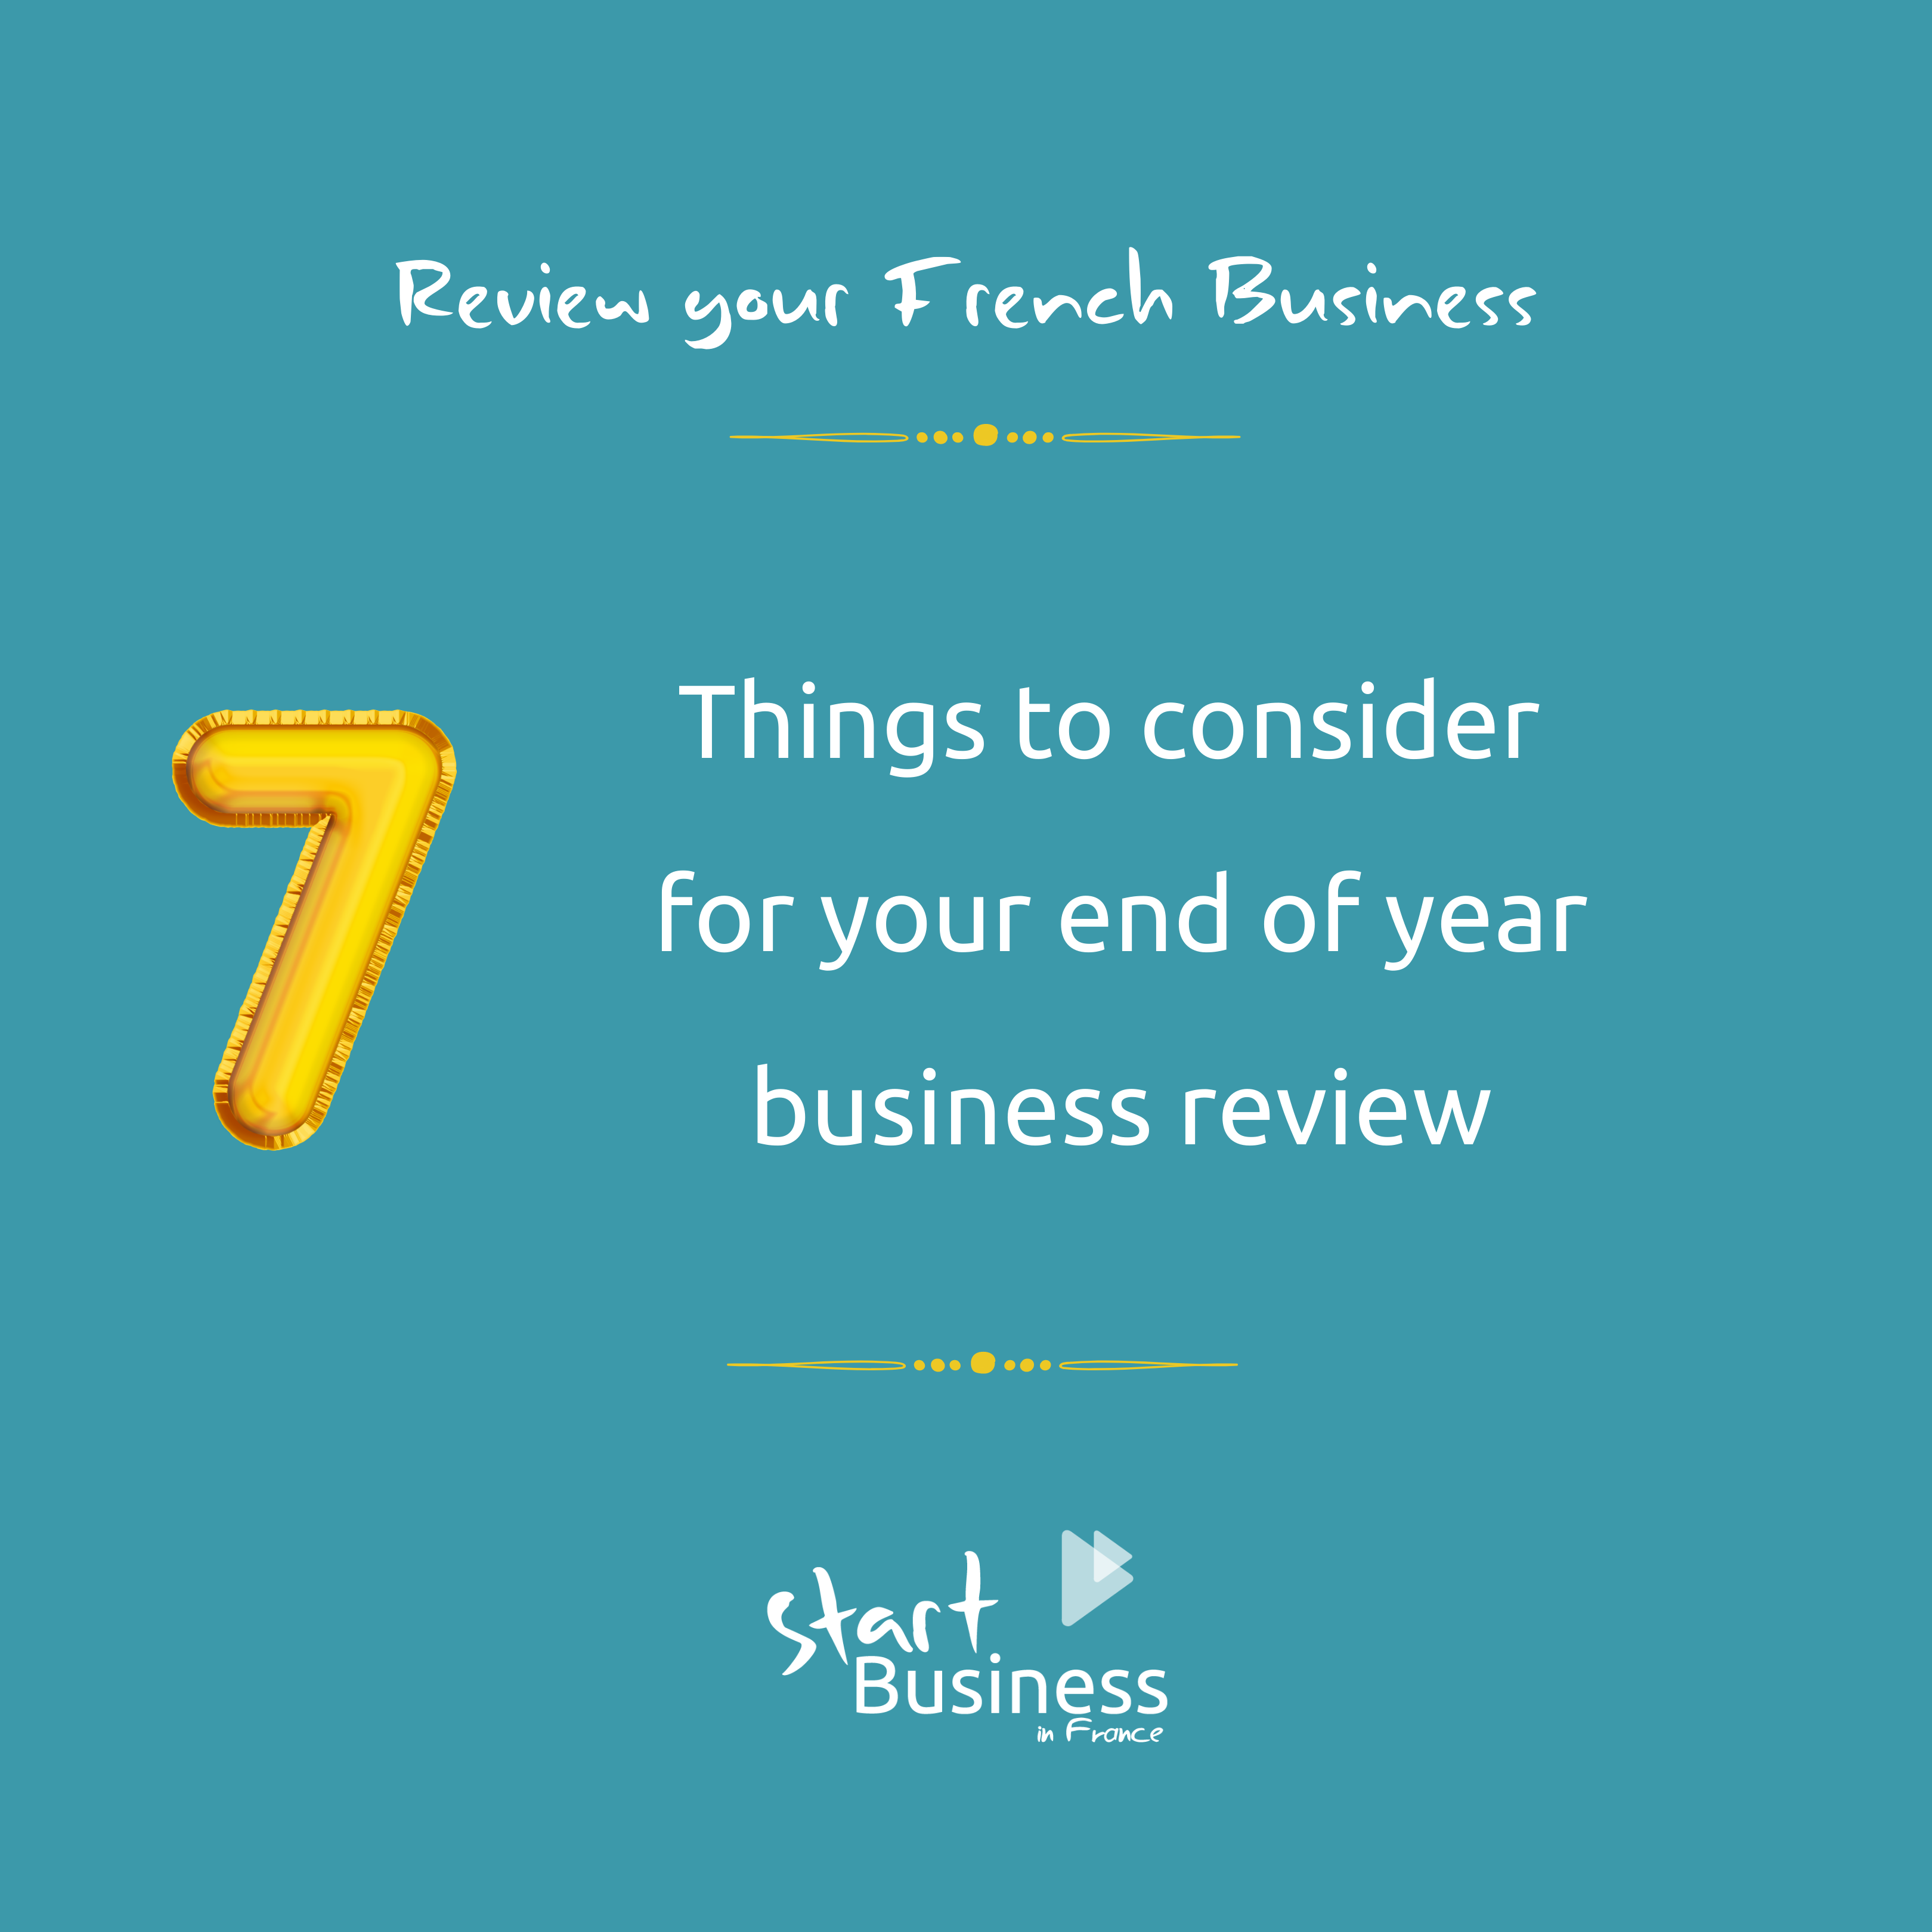 End of year business review for your French business